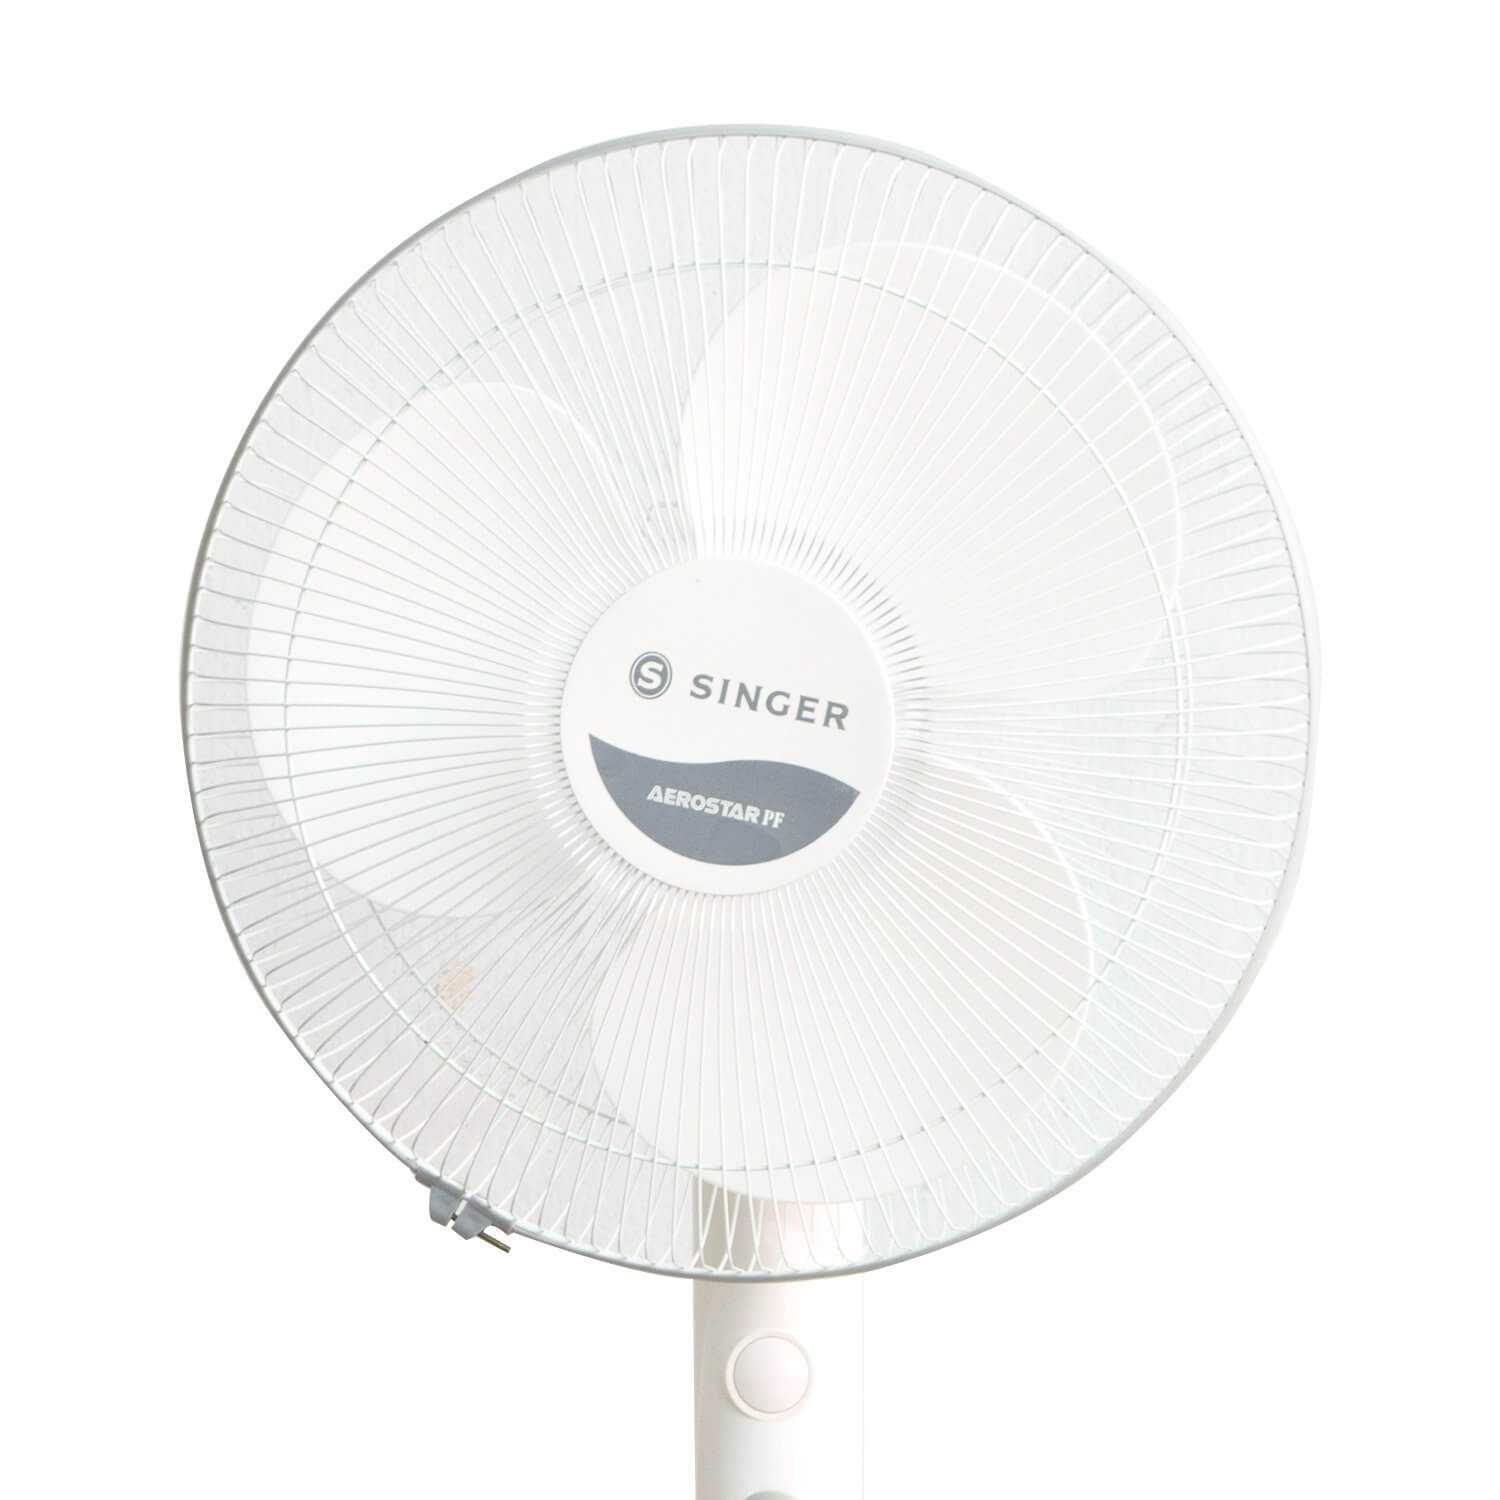 Singer 60 W, 400 MM Pedestal FAN Aerostar PF (White & Grey)